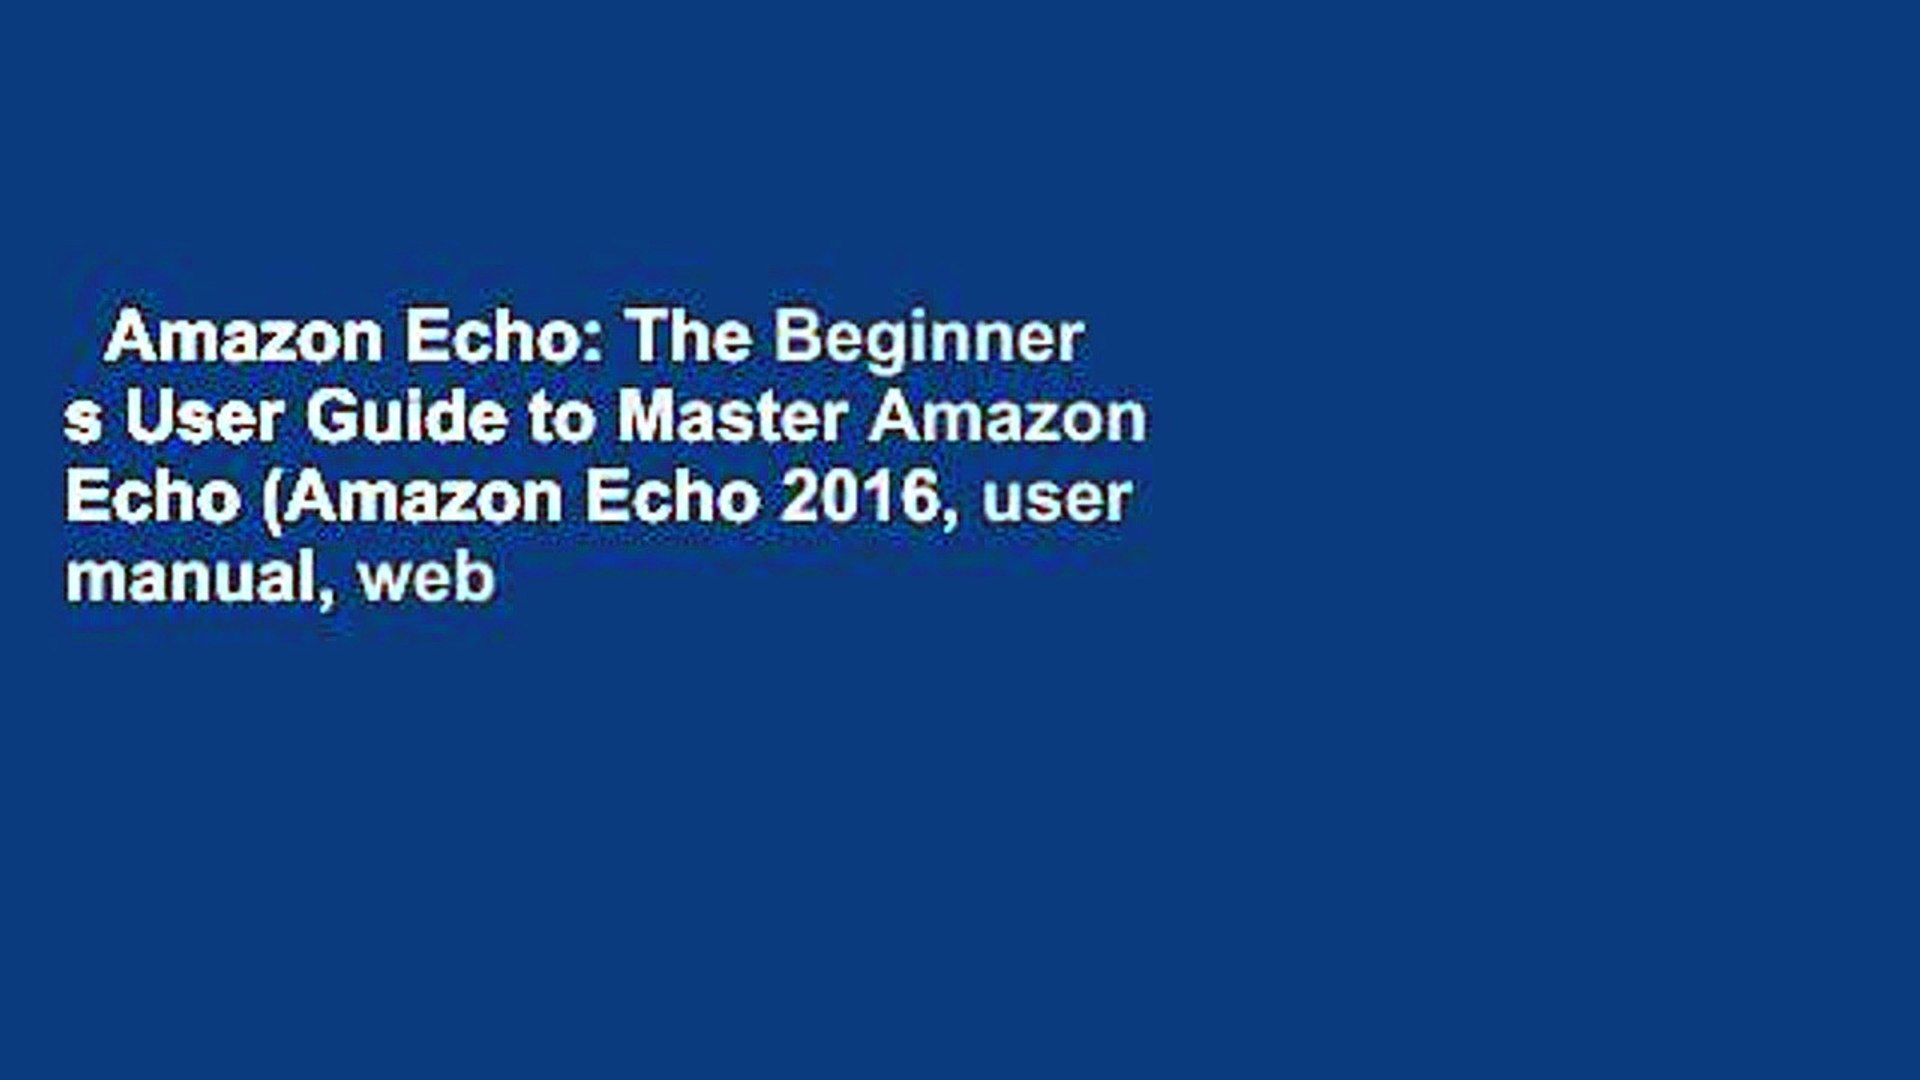 Amazon Echo: The Beginner s User Guide to Master Amazon Echo (Amazon Echo 2016, user manual, web